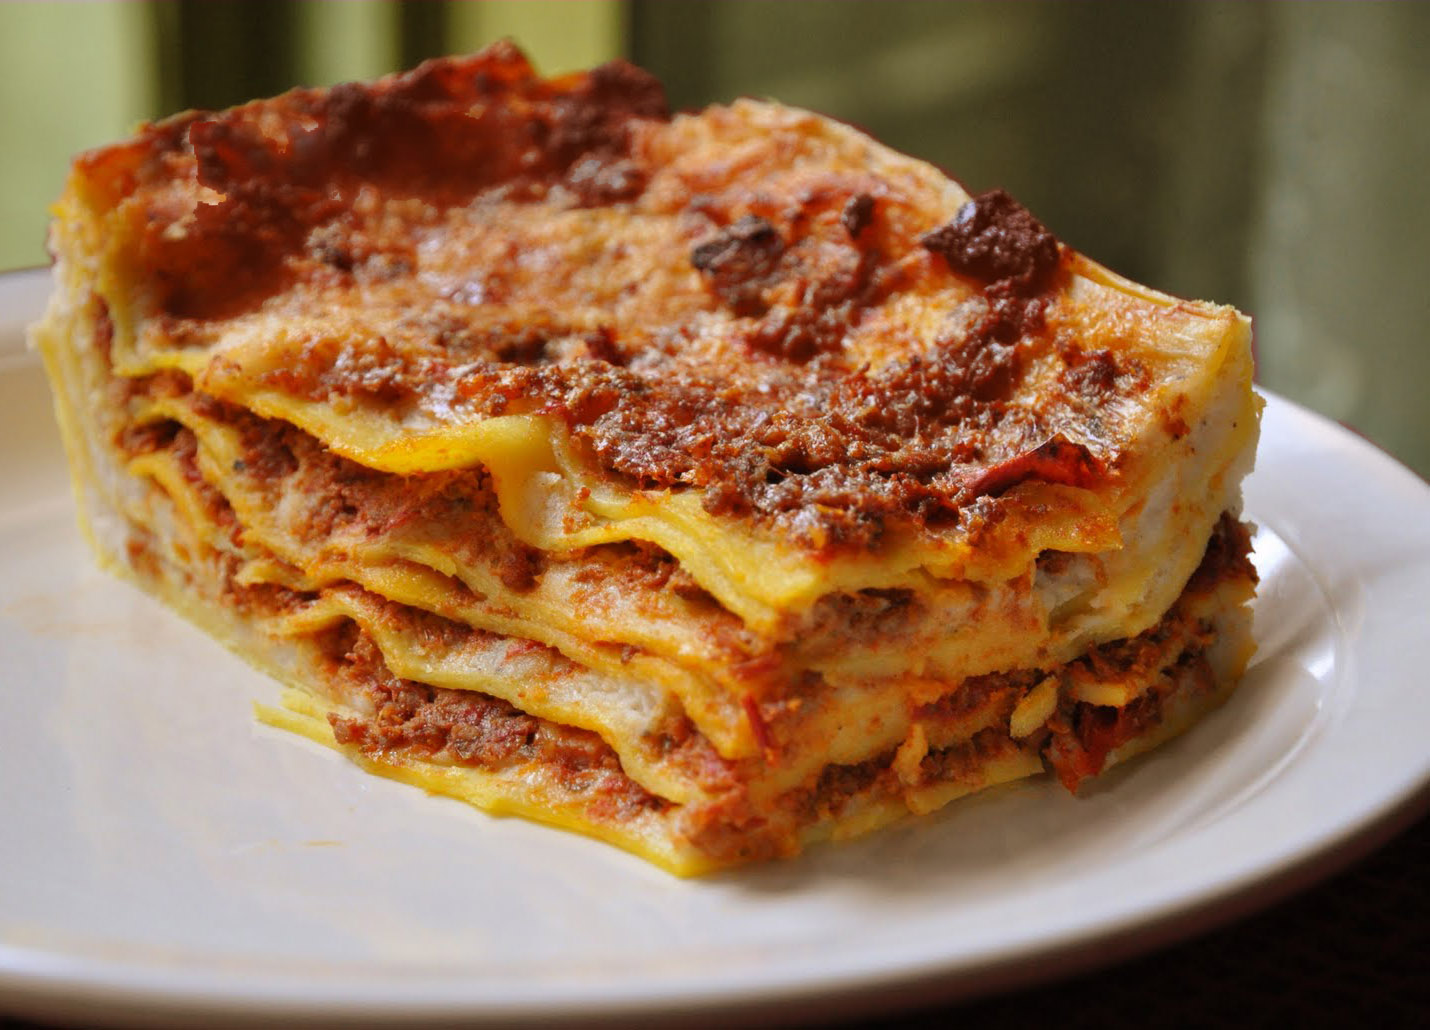 italian meat lasagna recipe how to cook it alla bolognese ville in blog. Black Bedroom Furniture Sets. Home Design Ideas